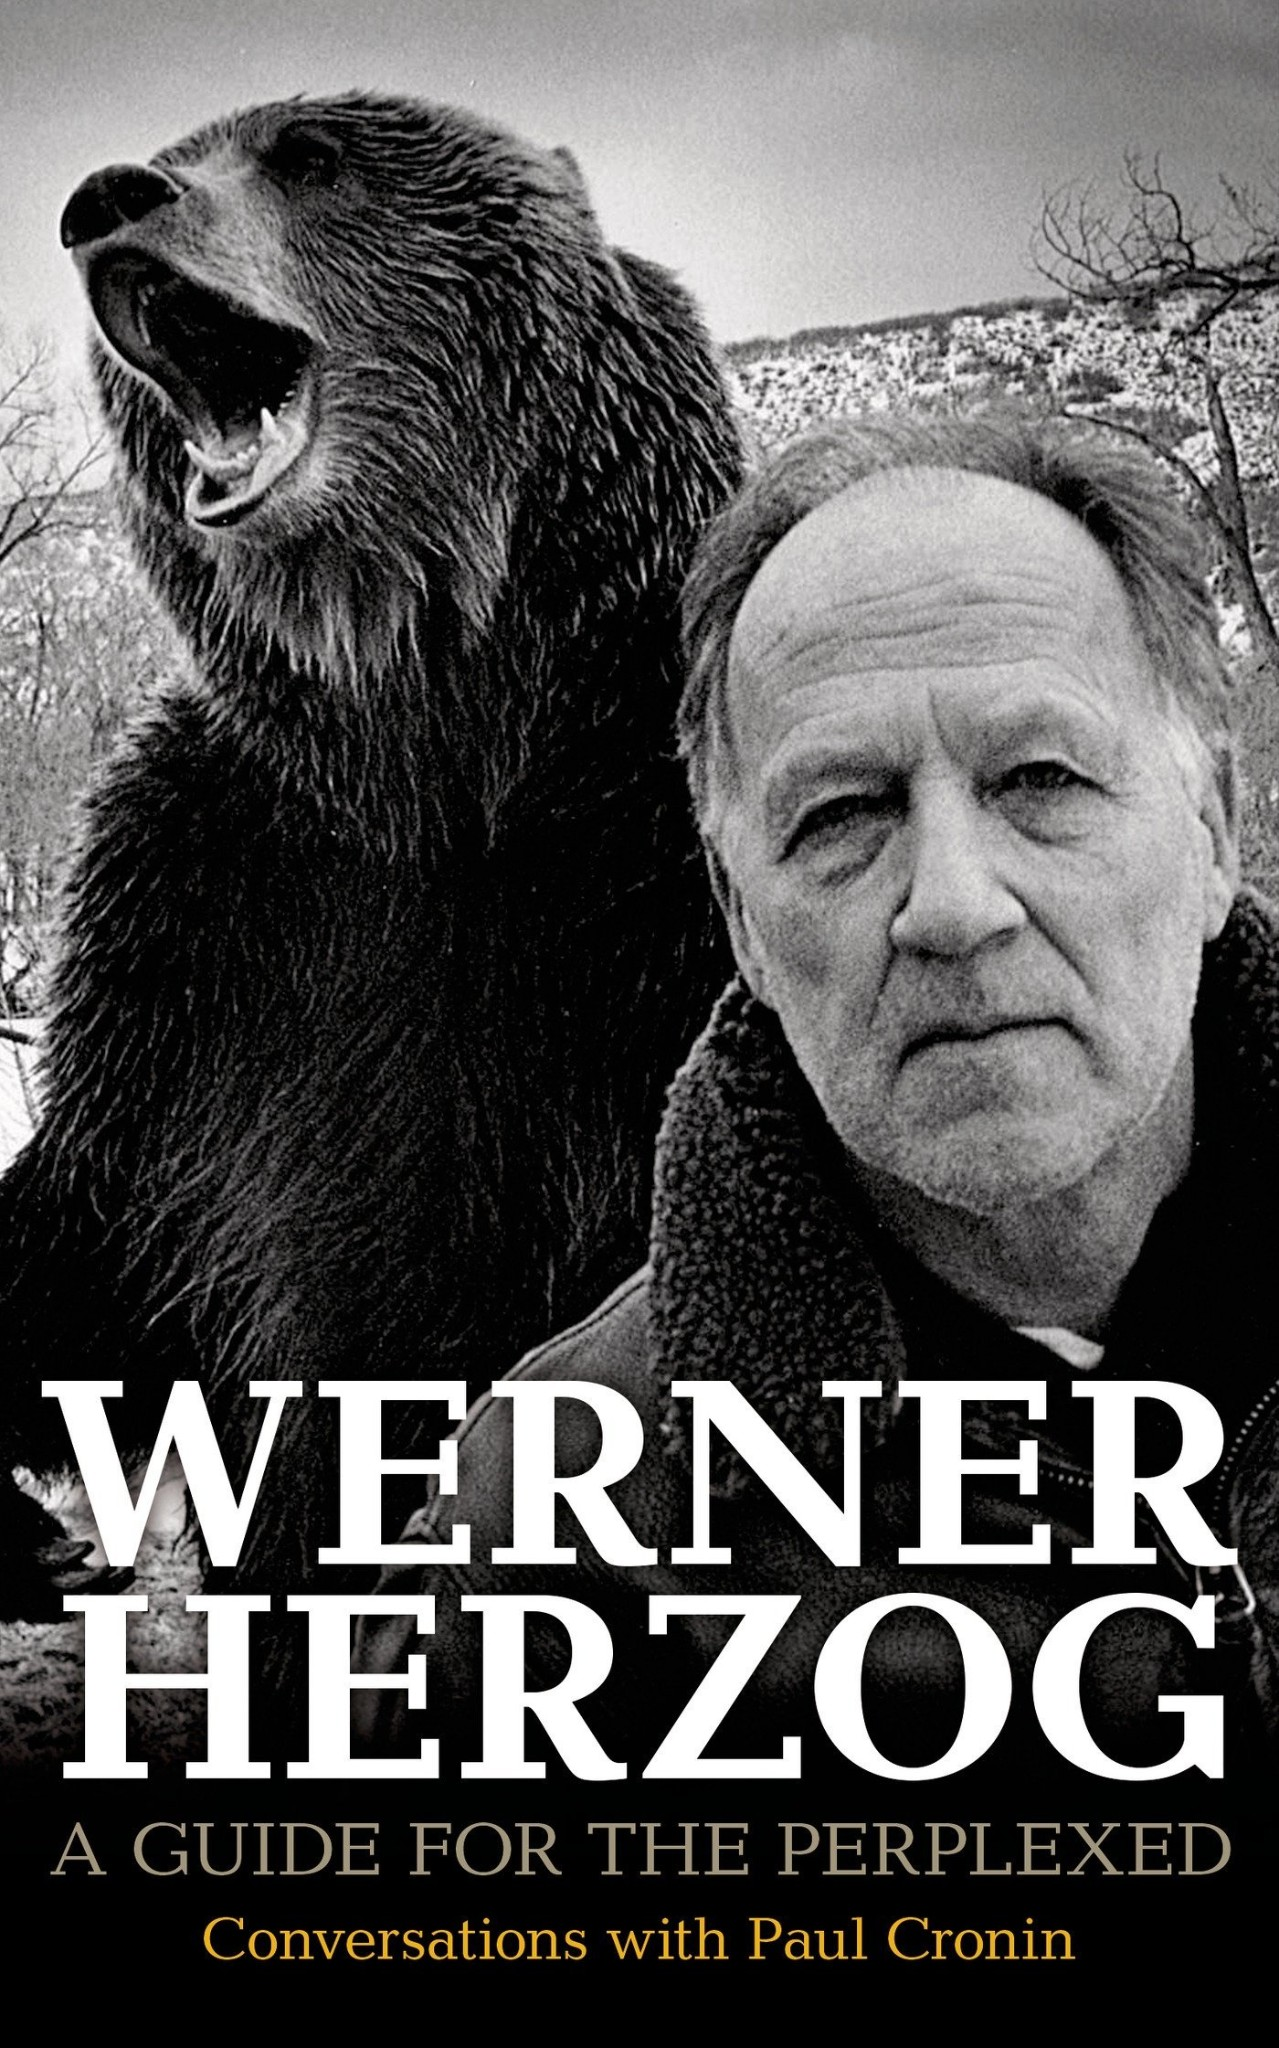 Werner Herzog on Creativity, Self-Reliance, and How to Make a Living Doing What You Love